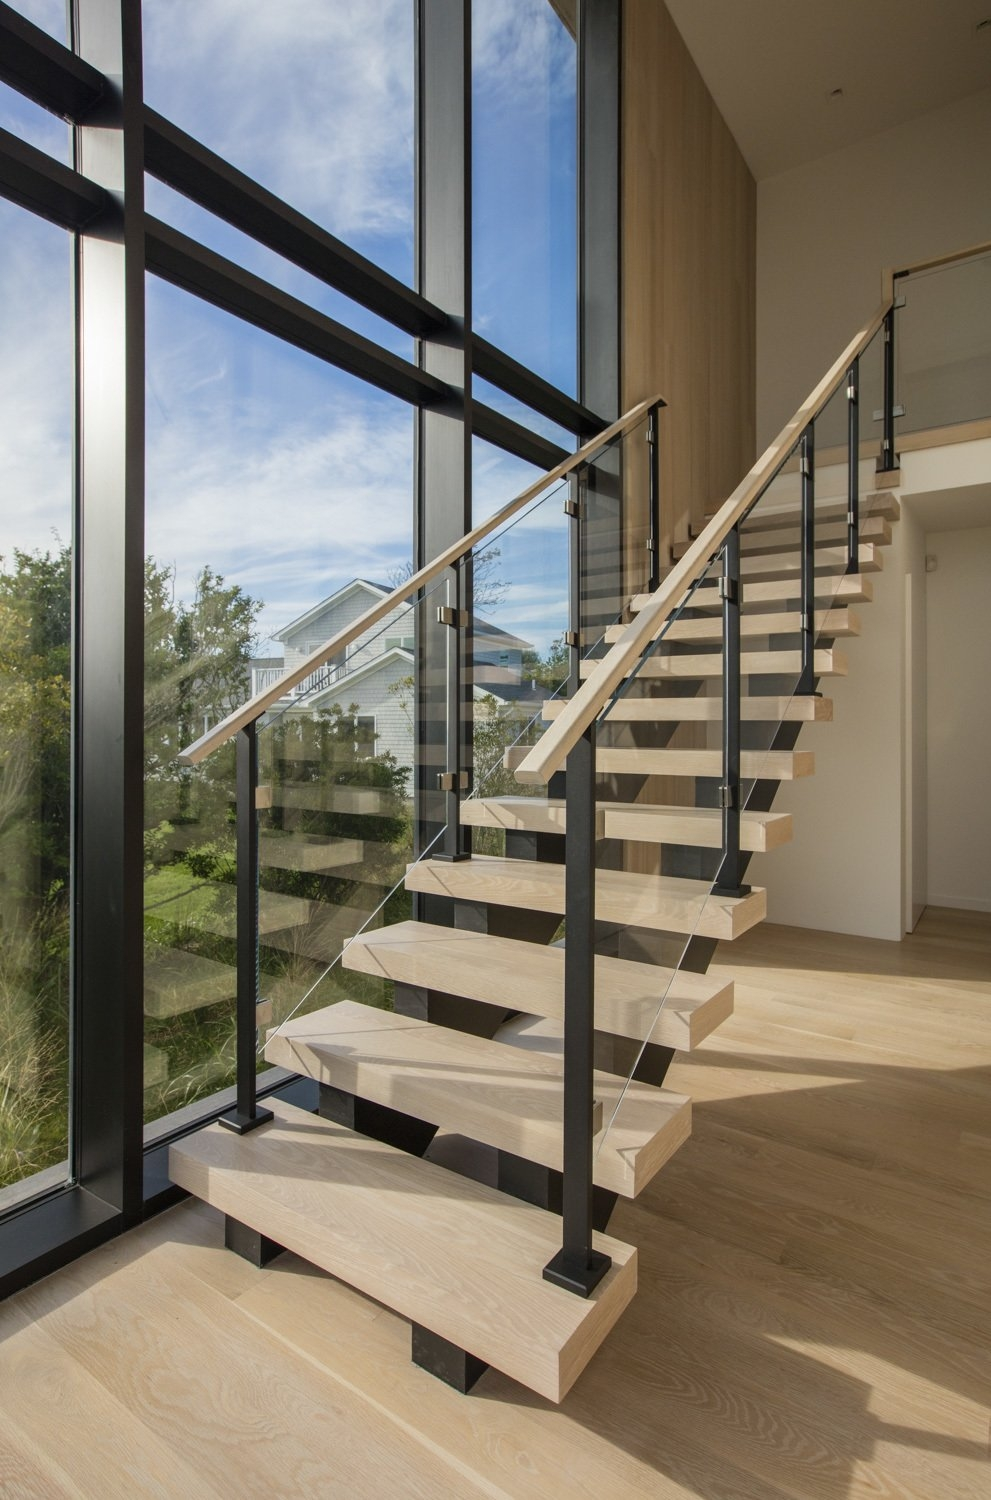 Photo 5 Of 6 In Montauk Party House Dwell   White Wood And Glass Staircase   Design   70'S   Thick Solid Oak Stair   Bannister   Indoor Glass